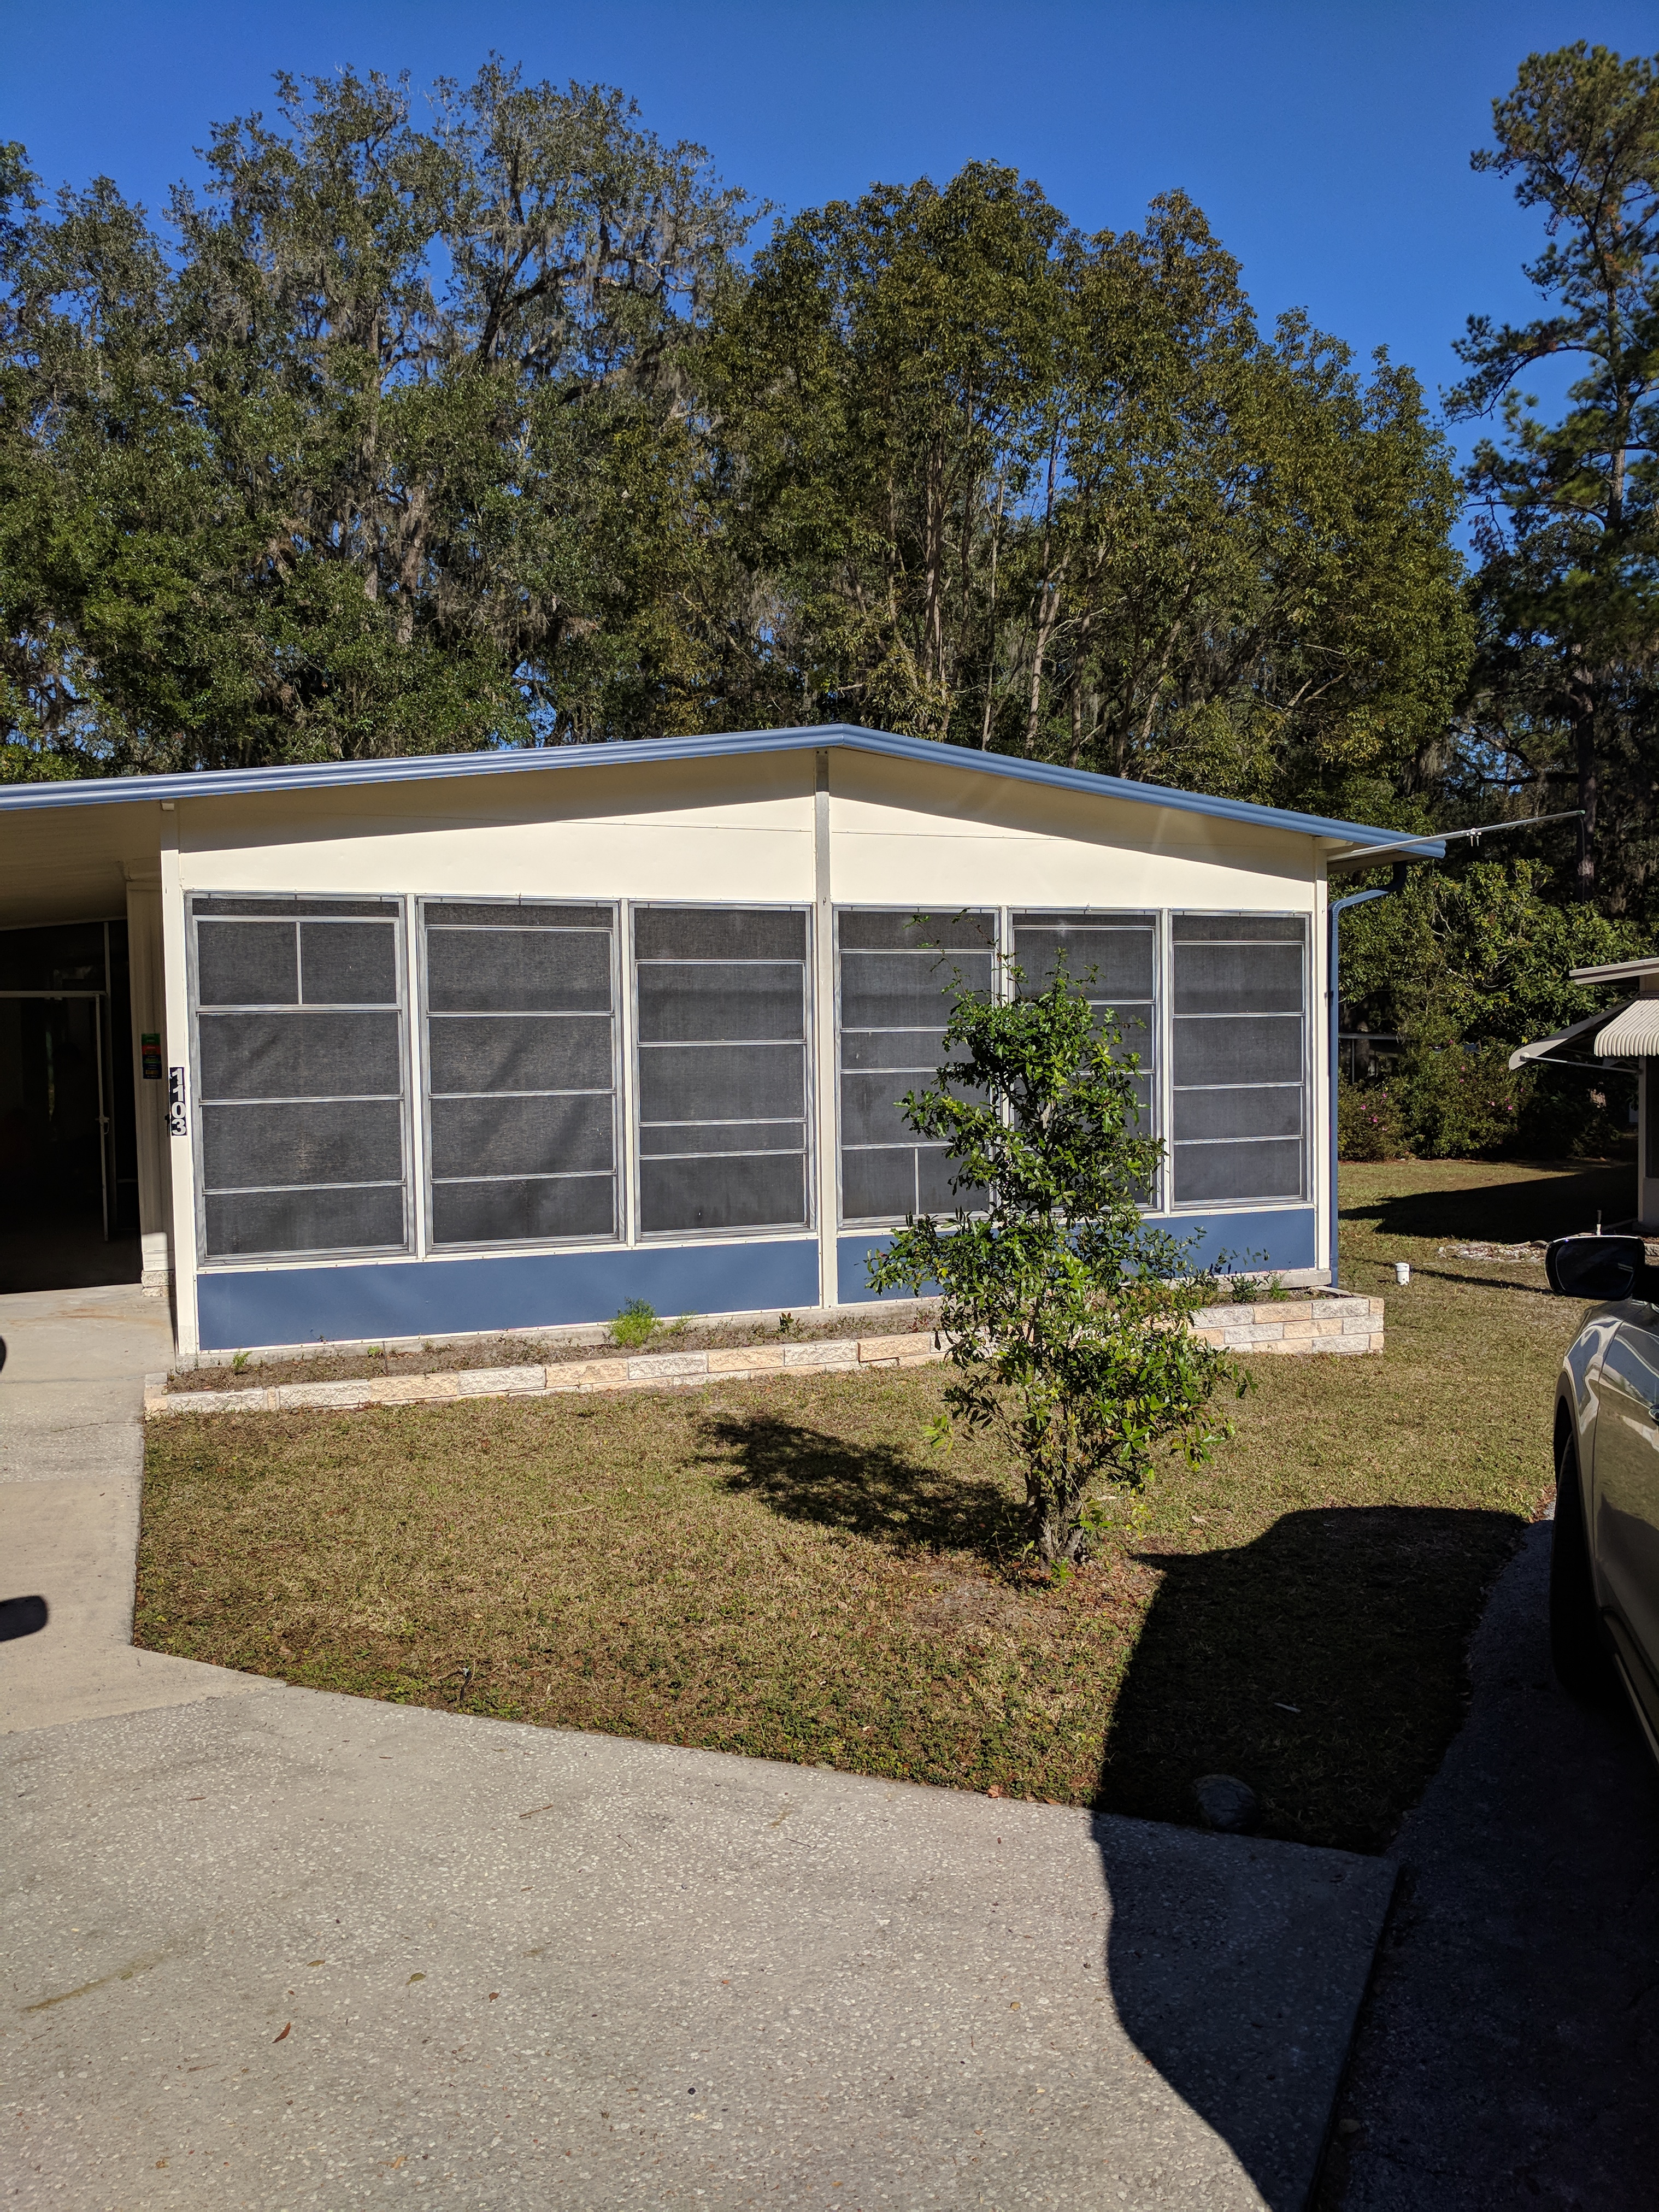 House for Rent in Cloverleaf